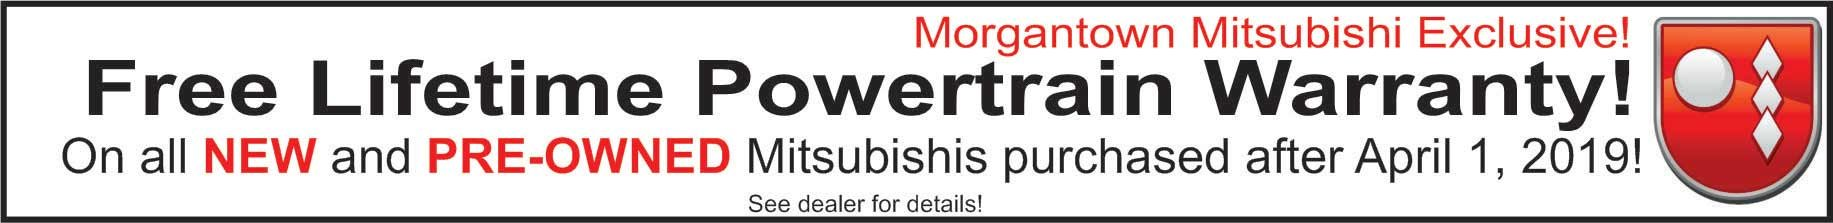 Free Powertrain Warranty